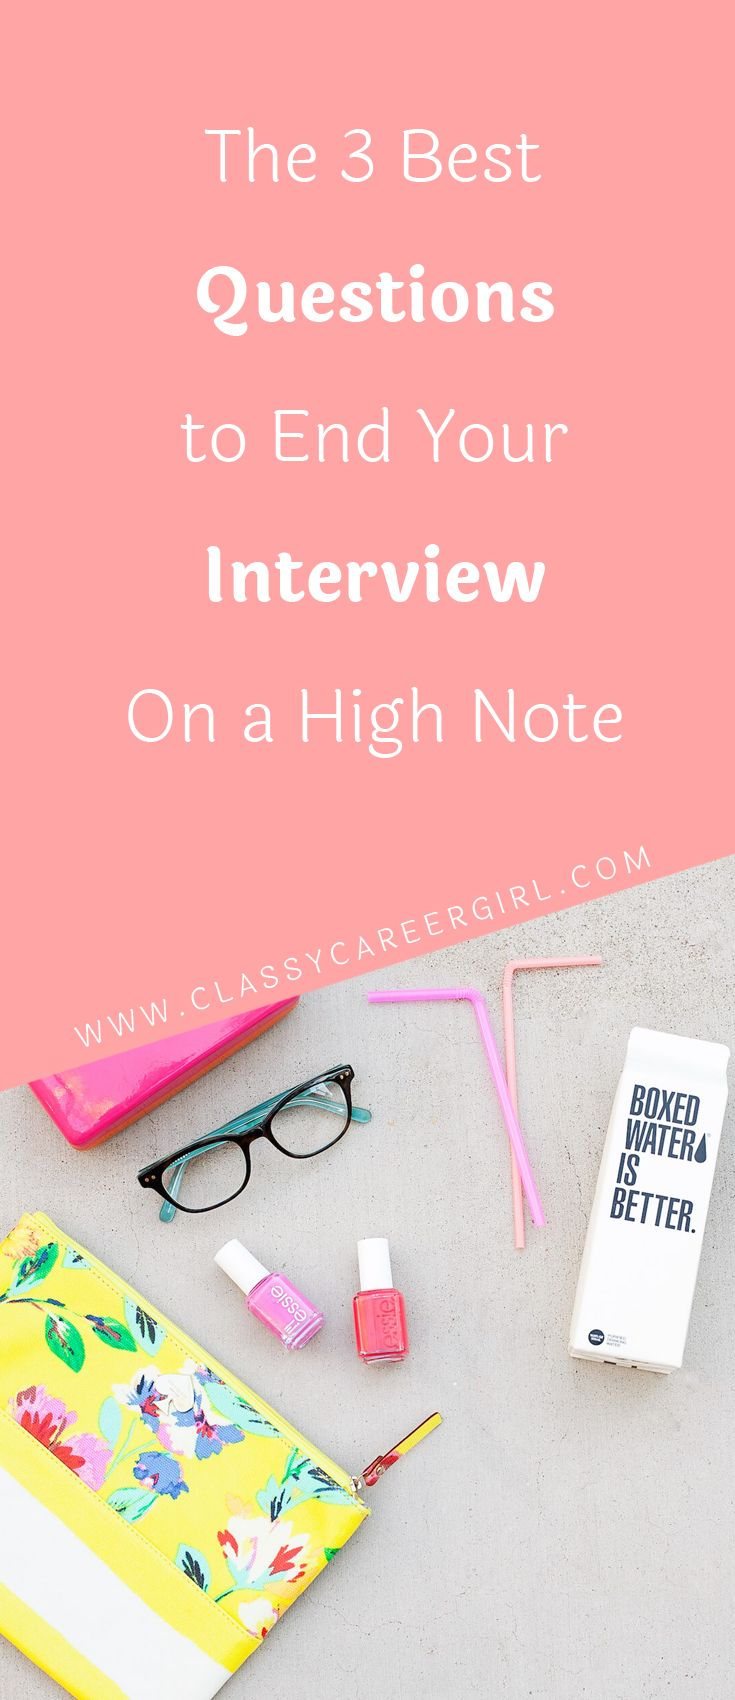 The 3 Best Questions to End Your Interview On a High Note  How do you know that the interview has gone well? Obviously, you are looking at the reaction of the interviewer when you answer certain questions and assuming how well you did.  Read more: http://www.classycareergirl.com/2016/11/best-questions-interview/